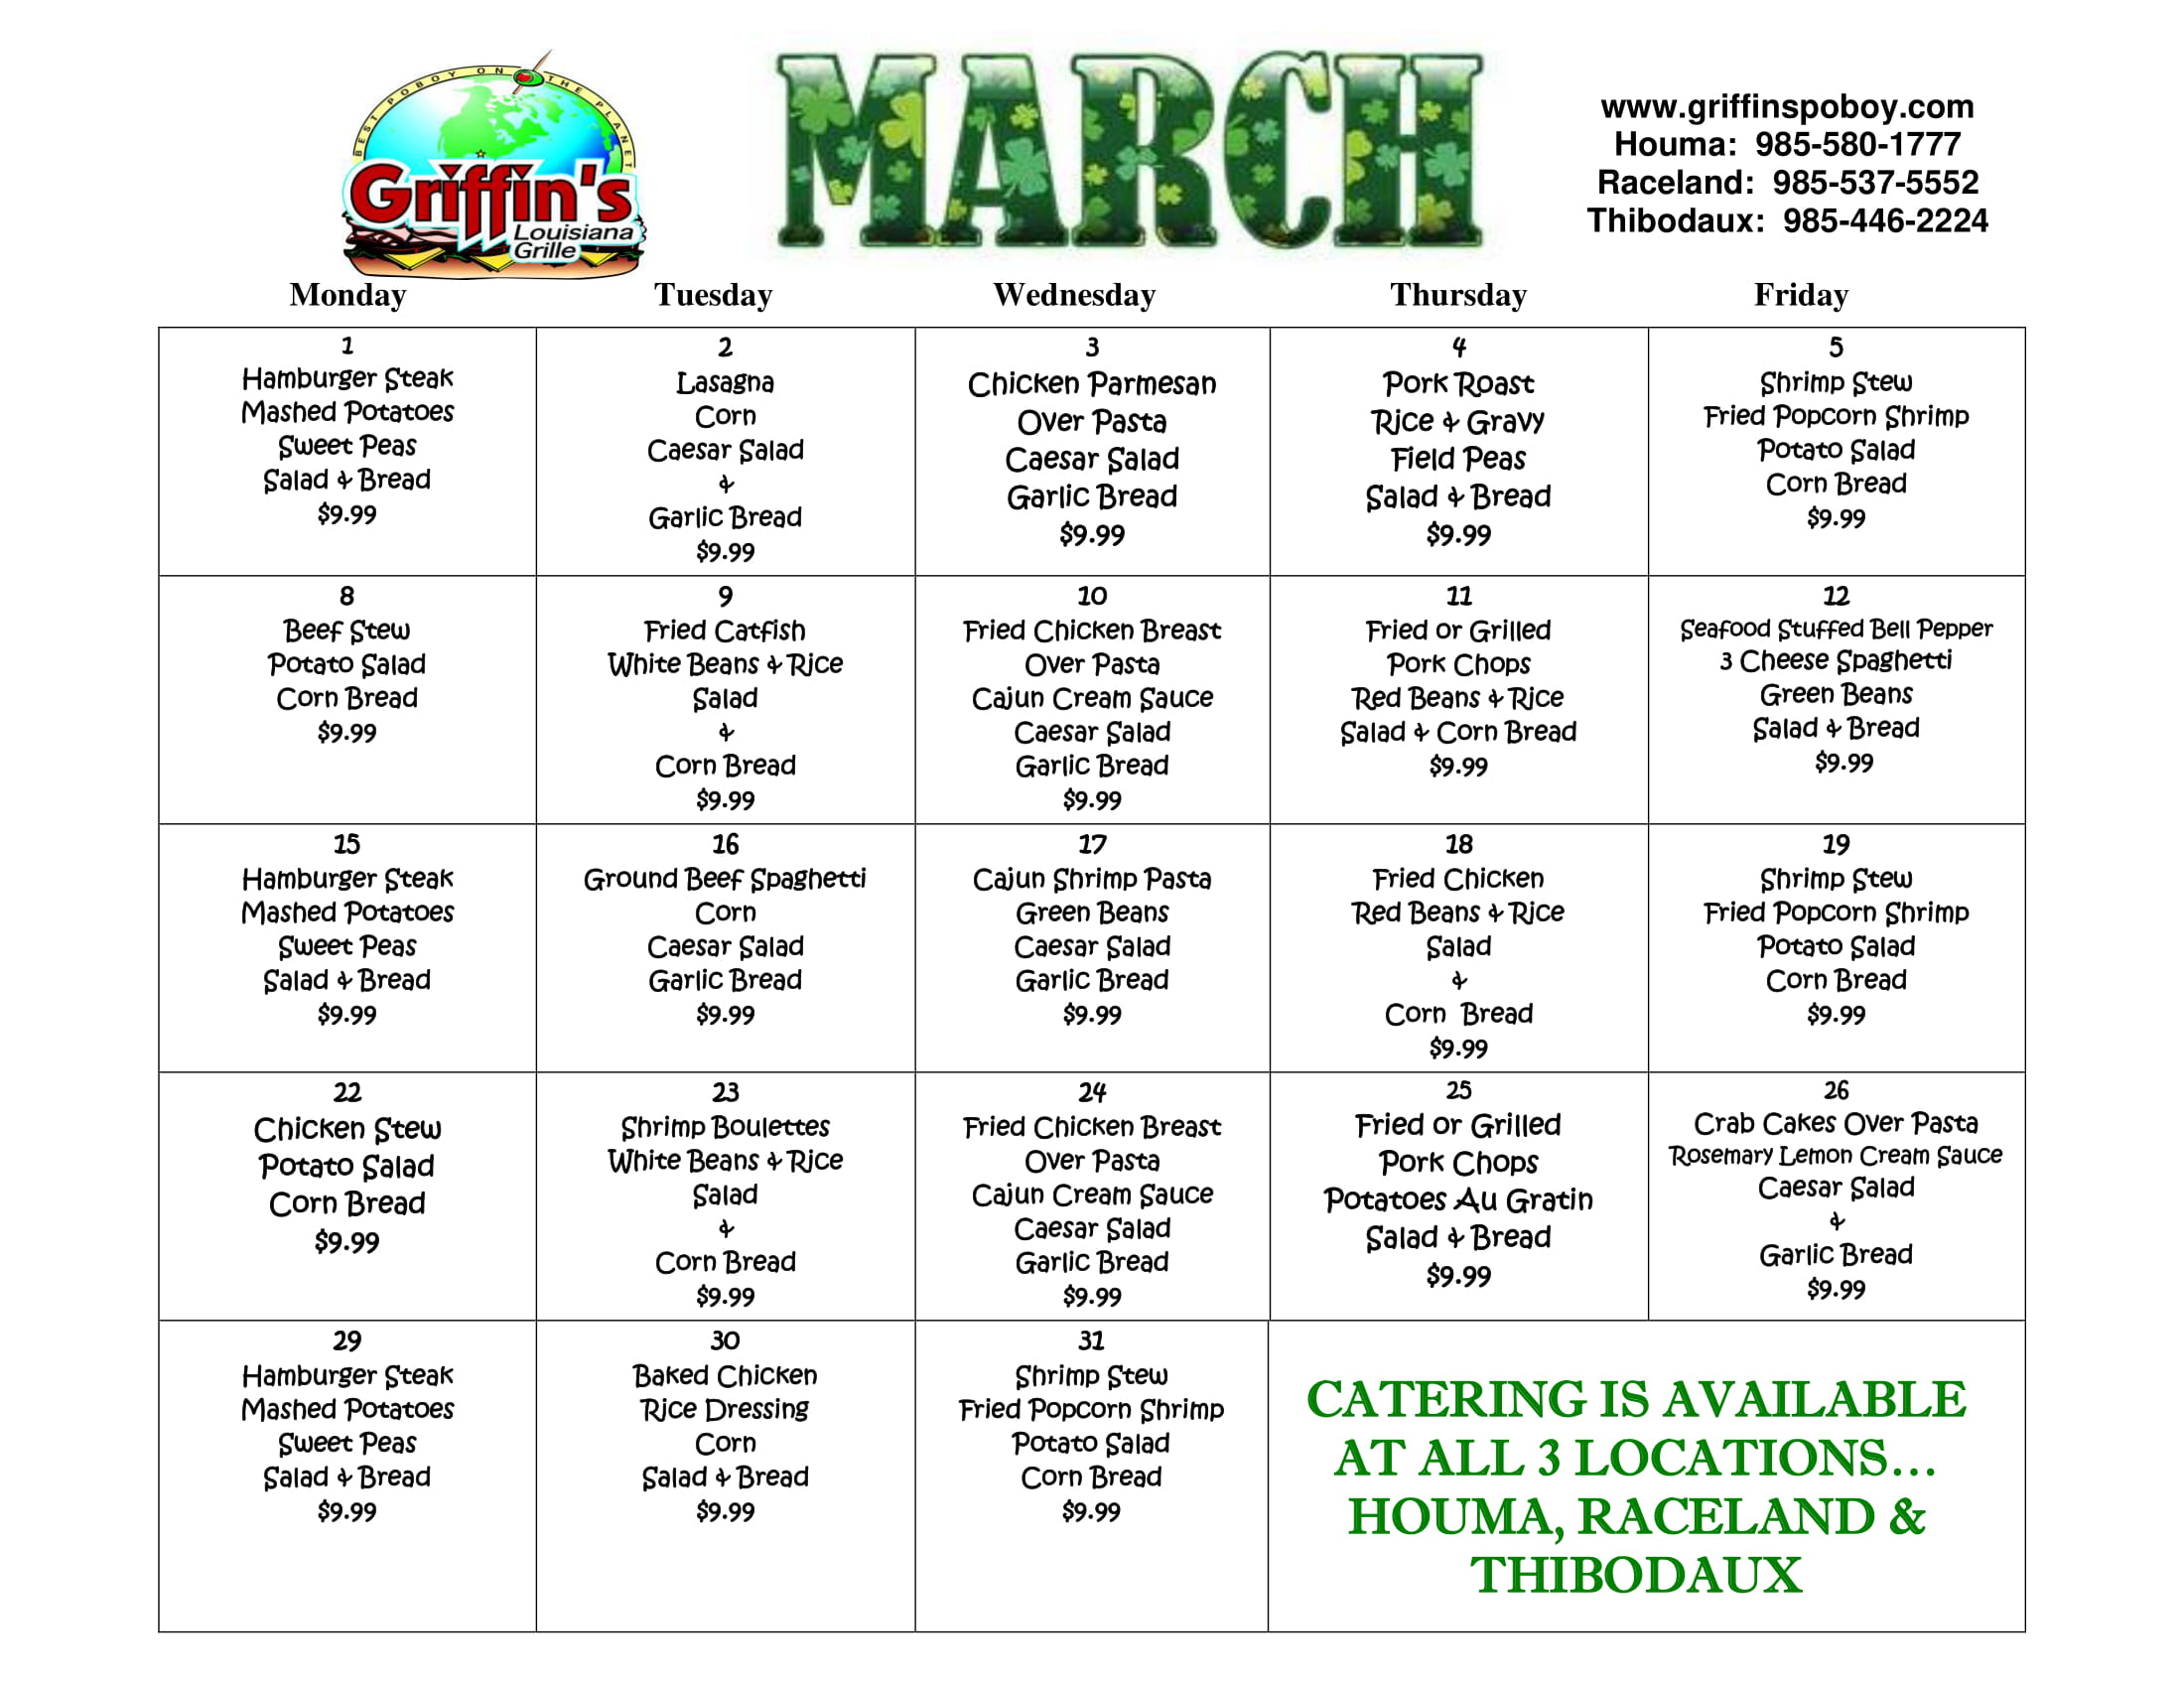 March Specials. Readable version available by clicking button or image.